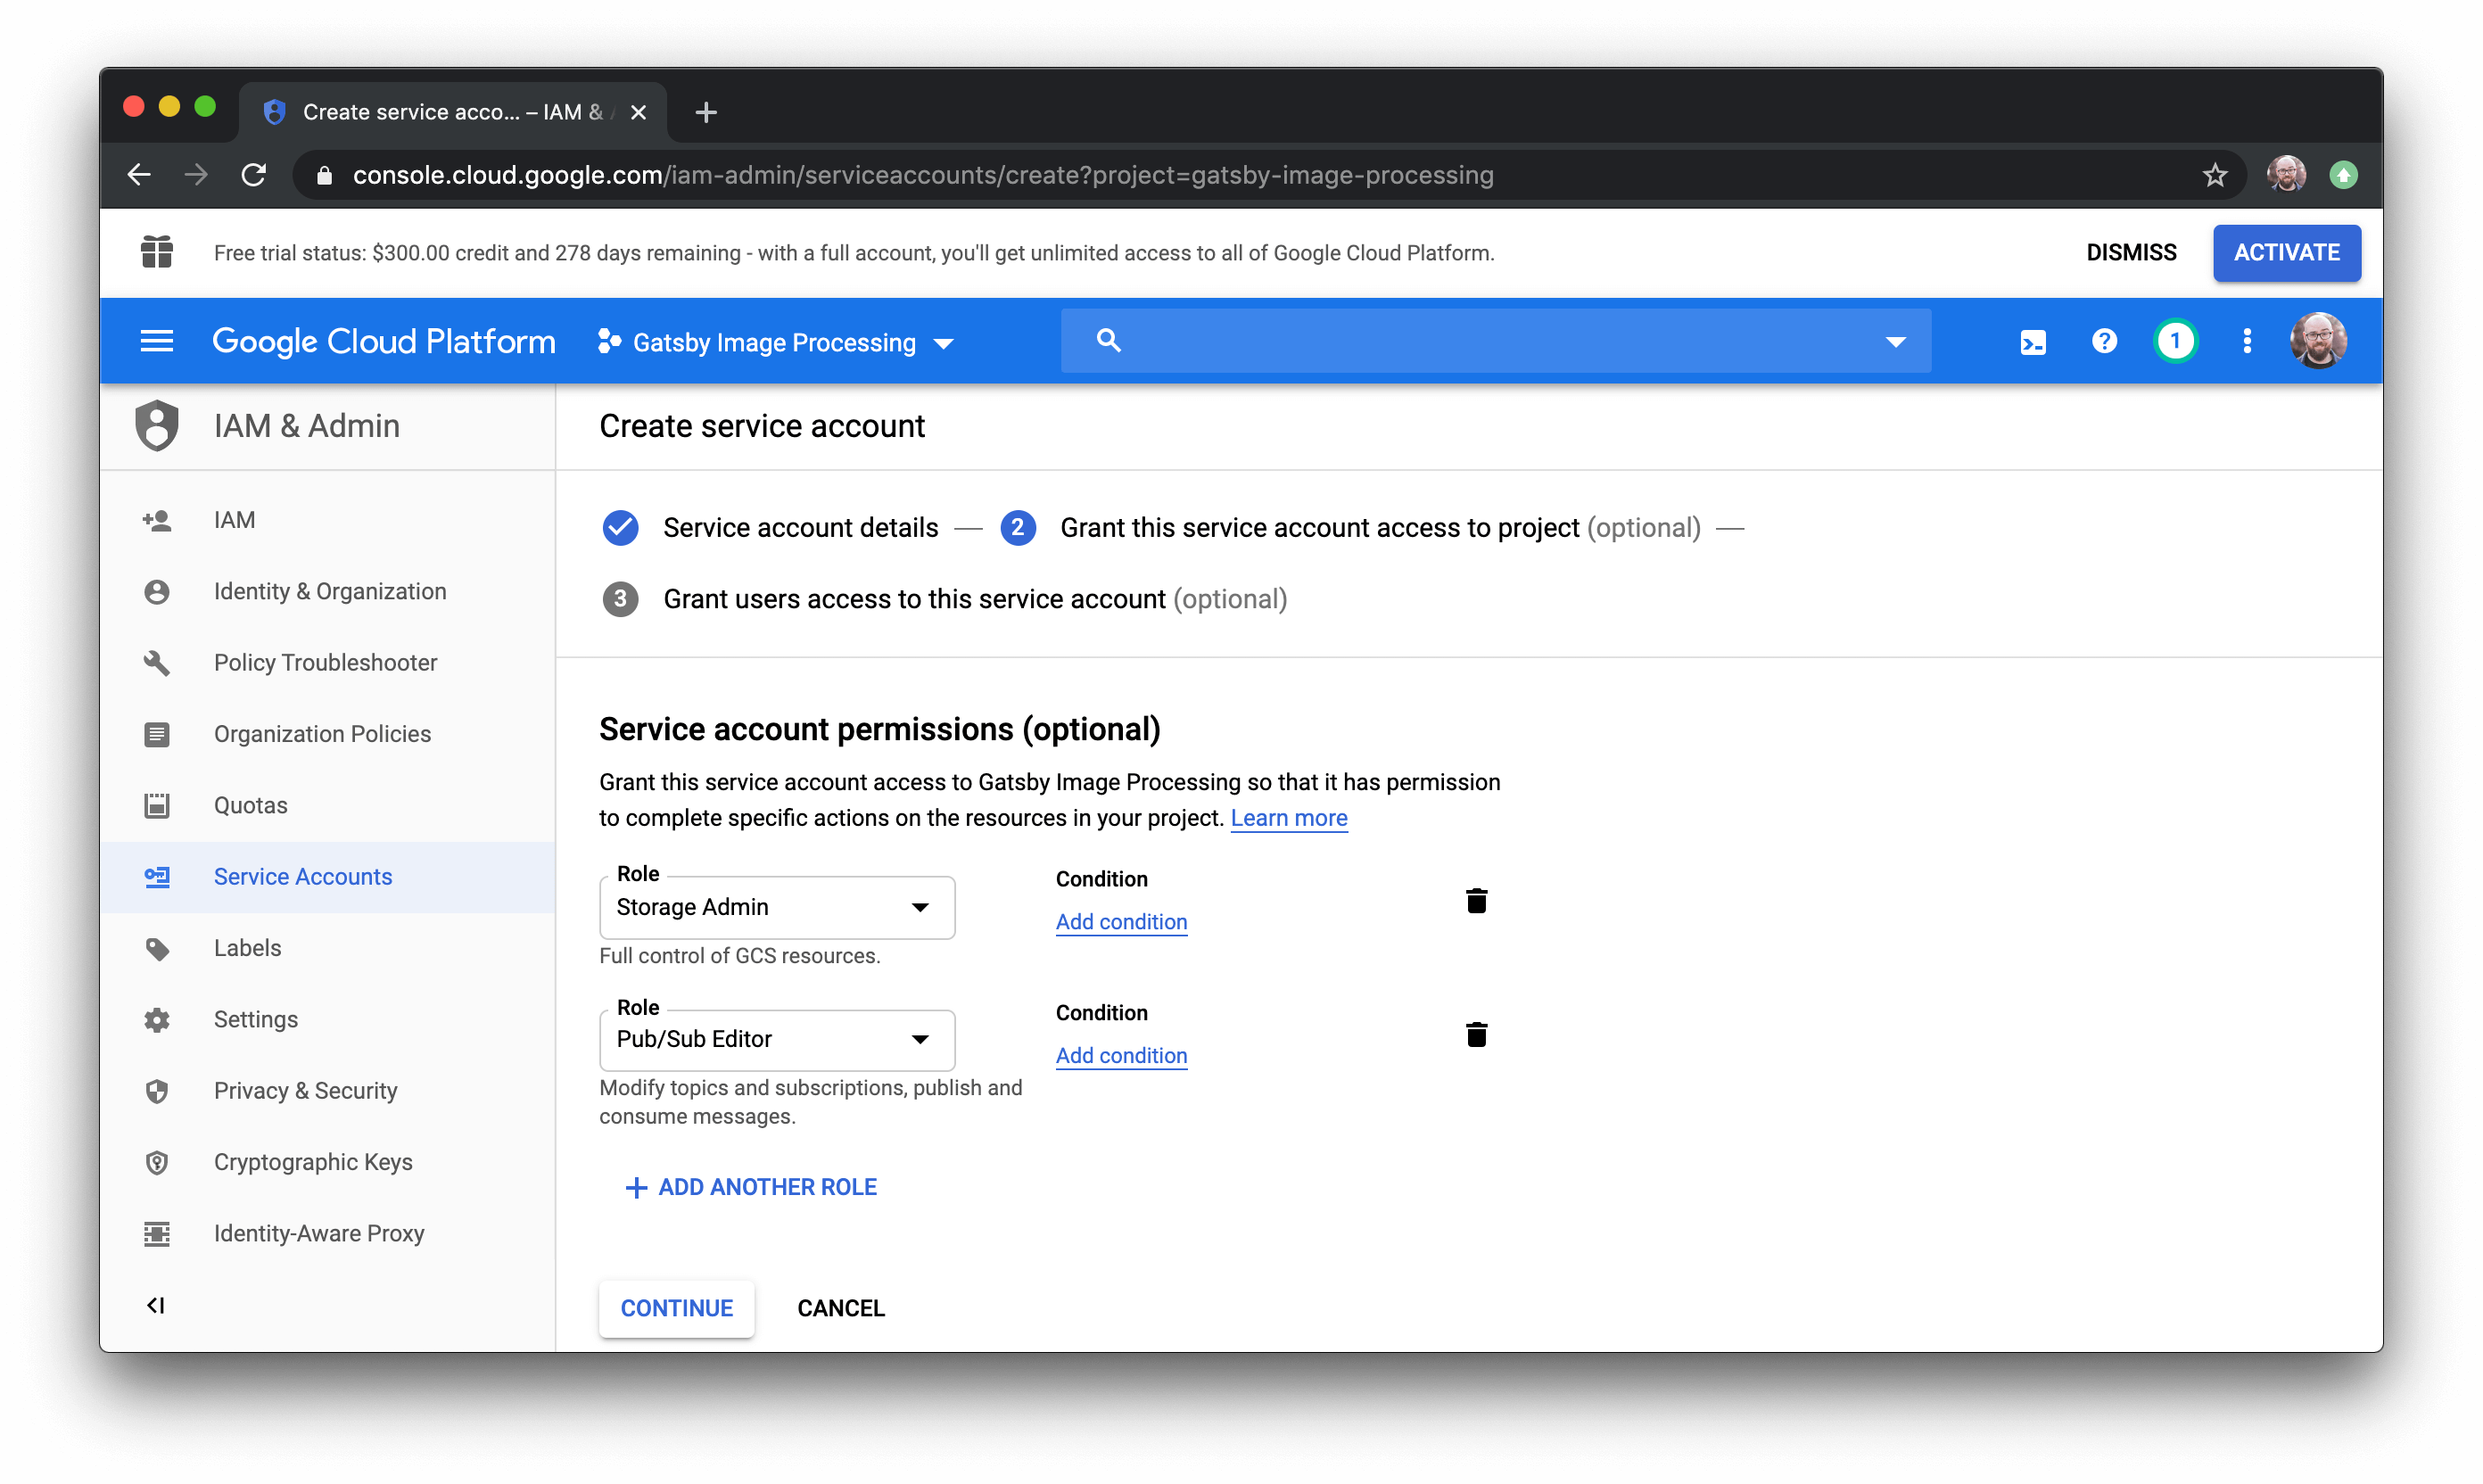 Workflow for setting service account permissions in Google Cloud.